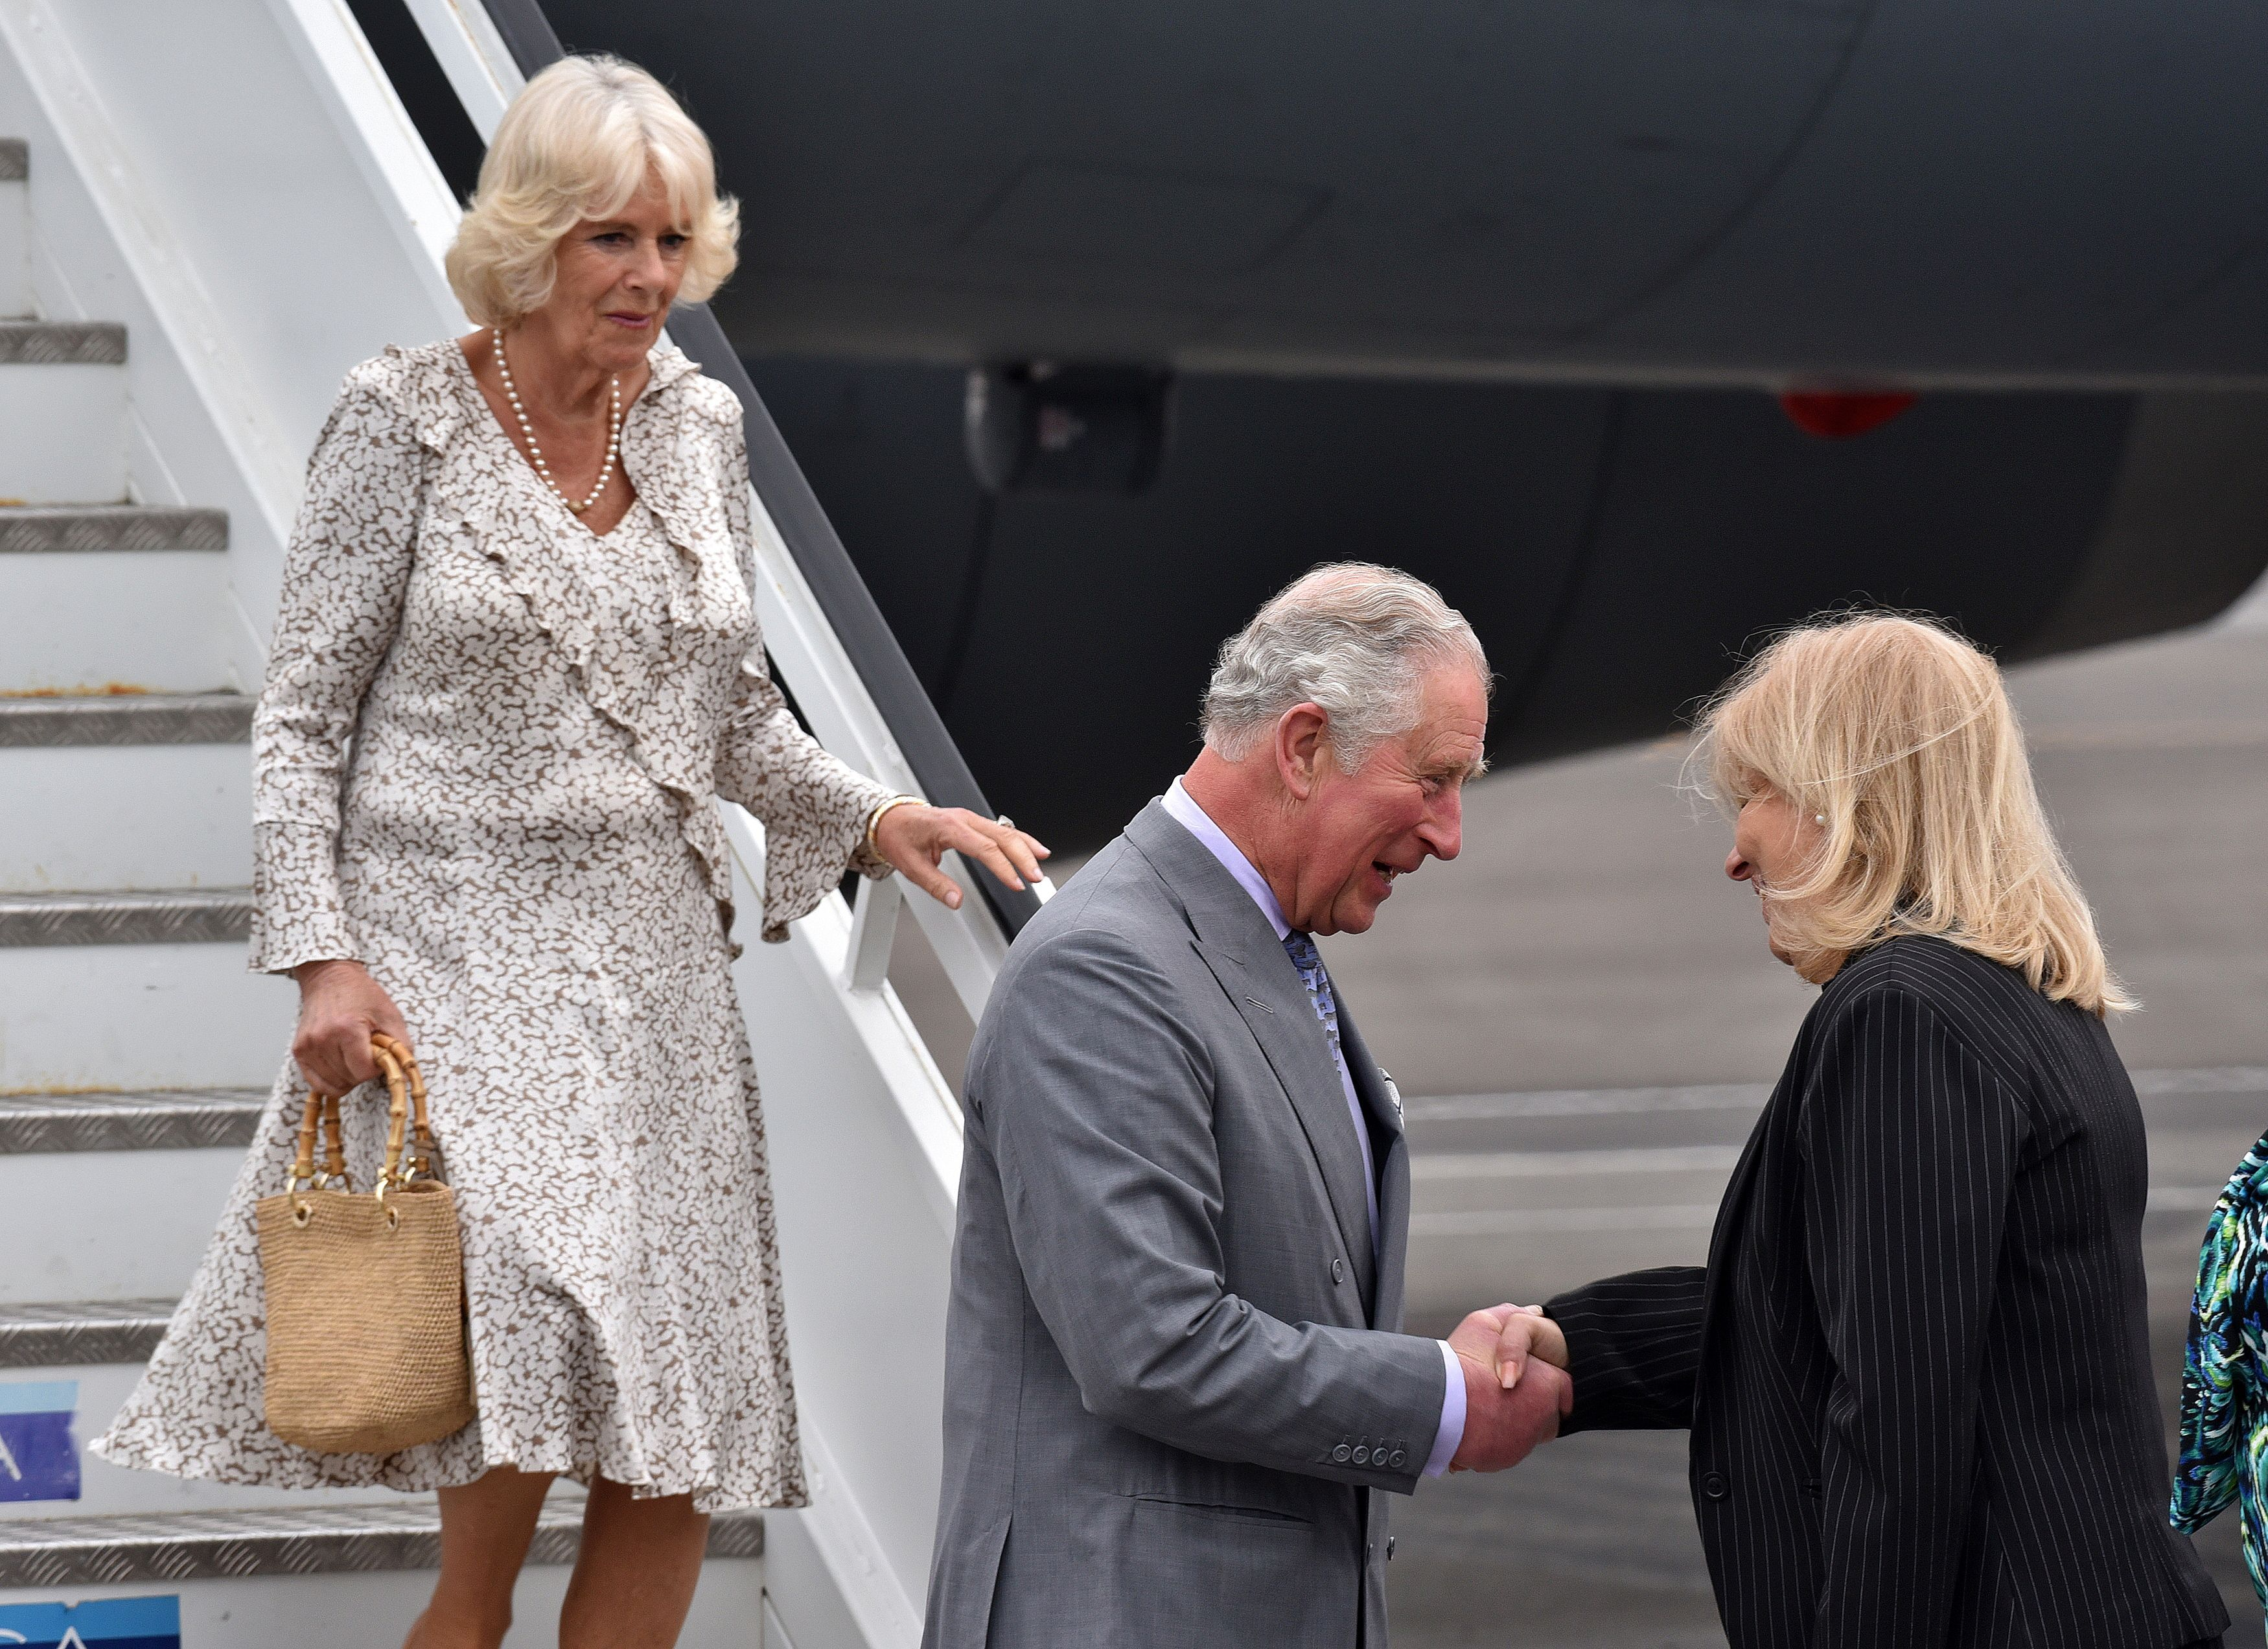 CUBA-BRITAIN-ROYALS-PRINCE CHARLES-ARRIVAL